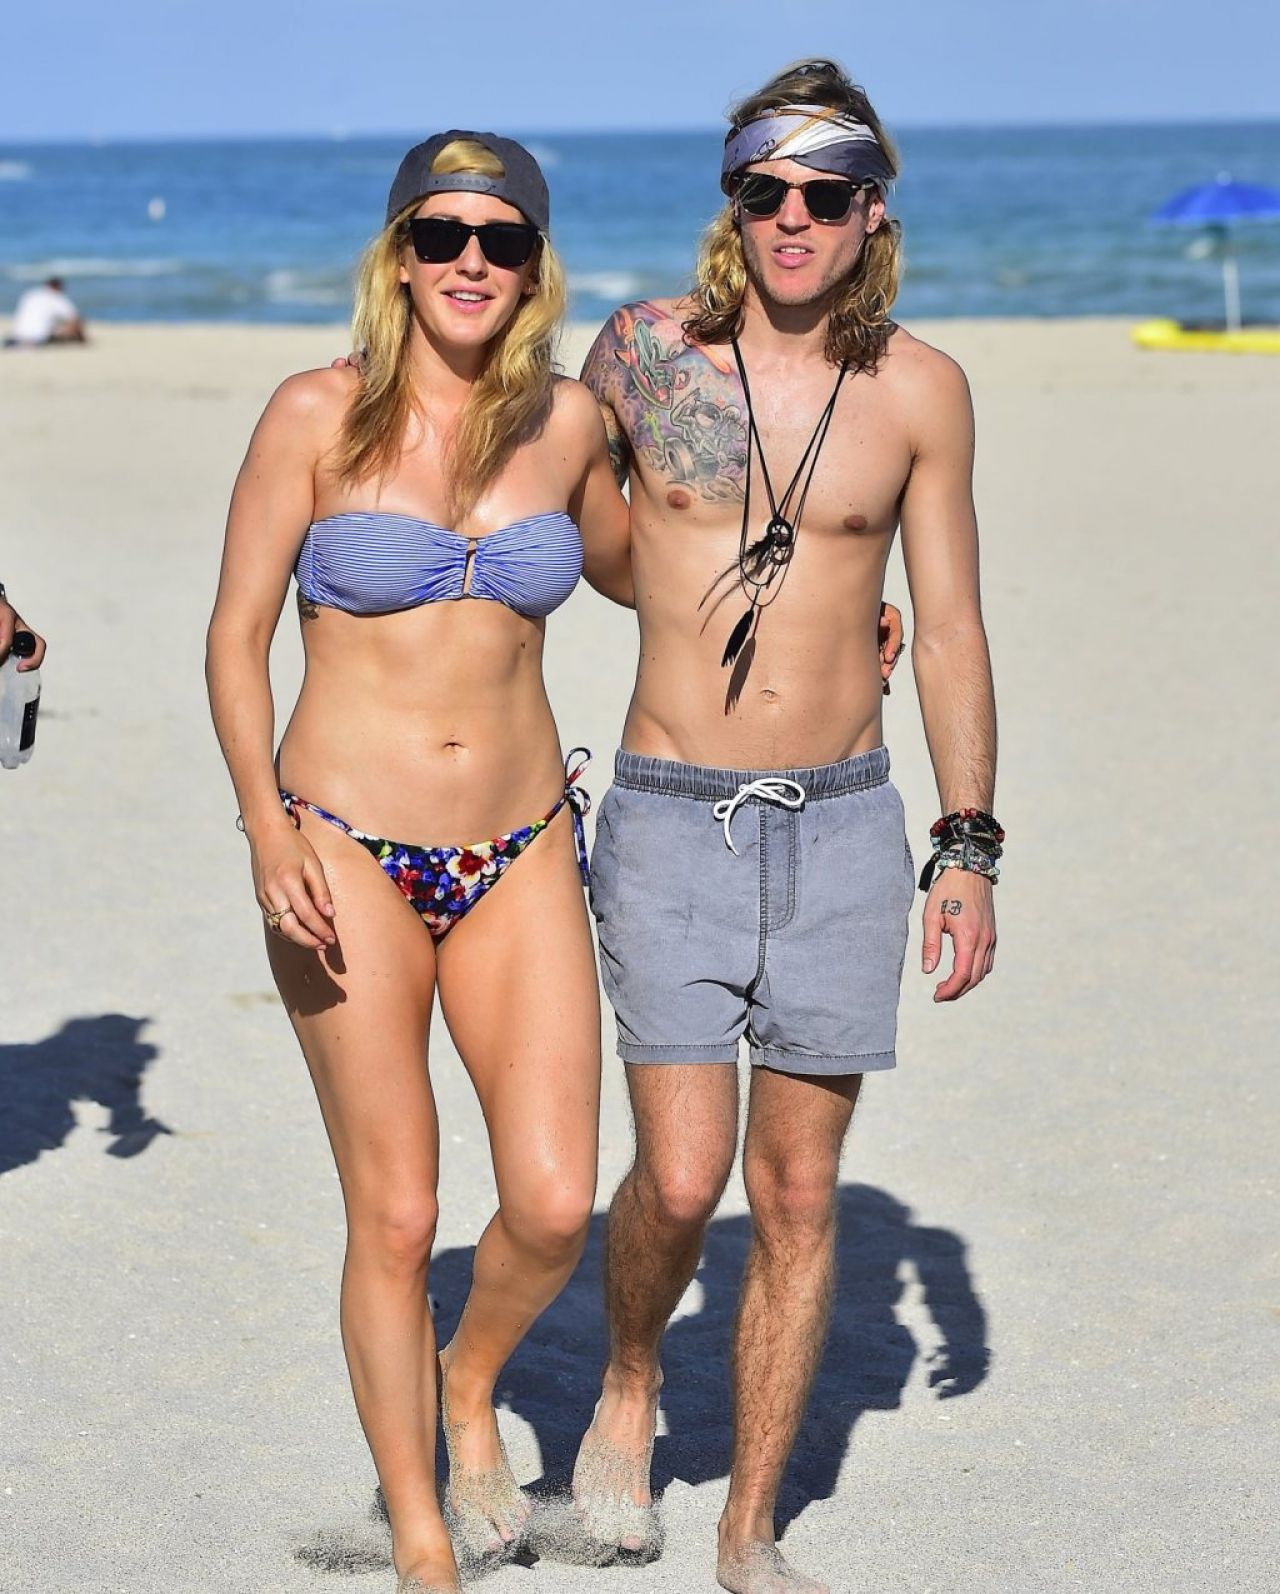 Ellie Goulding Bikini Pics - Beach in Miami, January 2015